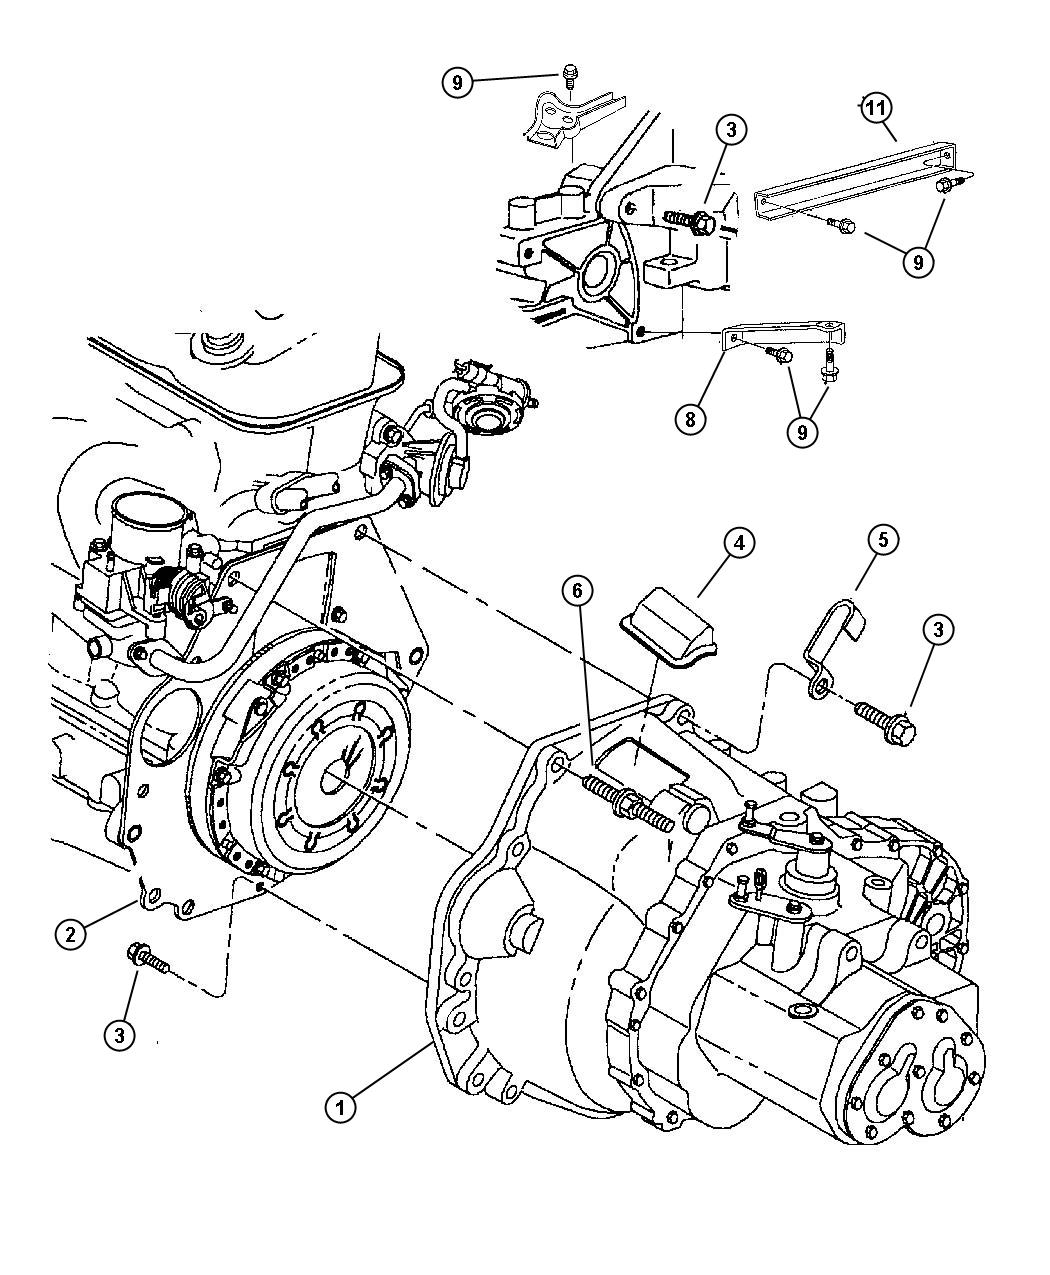 2009 mazda 6 wiring diagram 2009 discover your wiring diagram wiring diagram